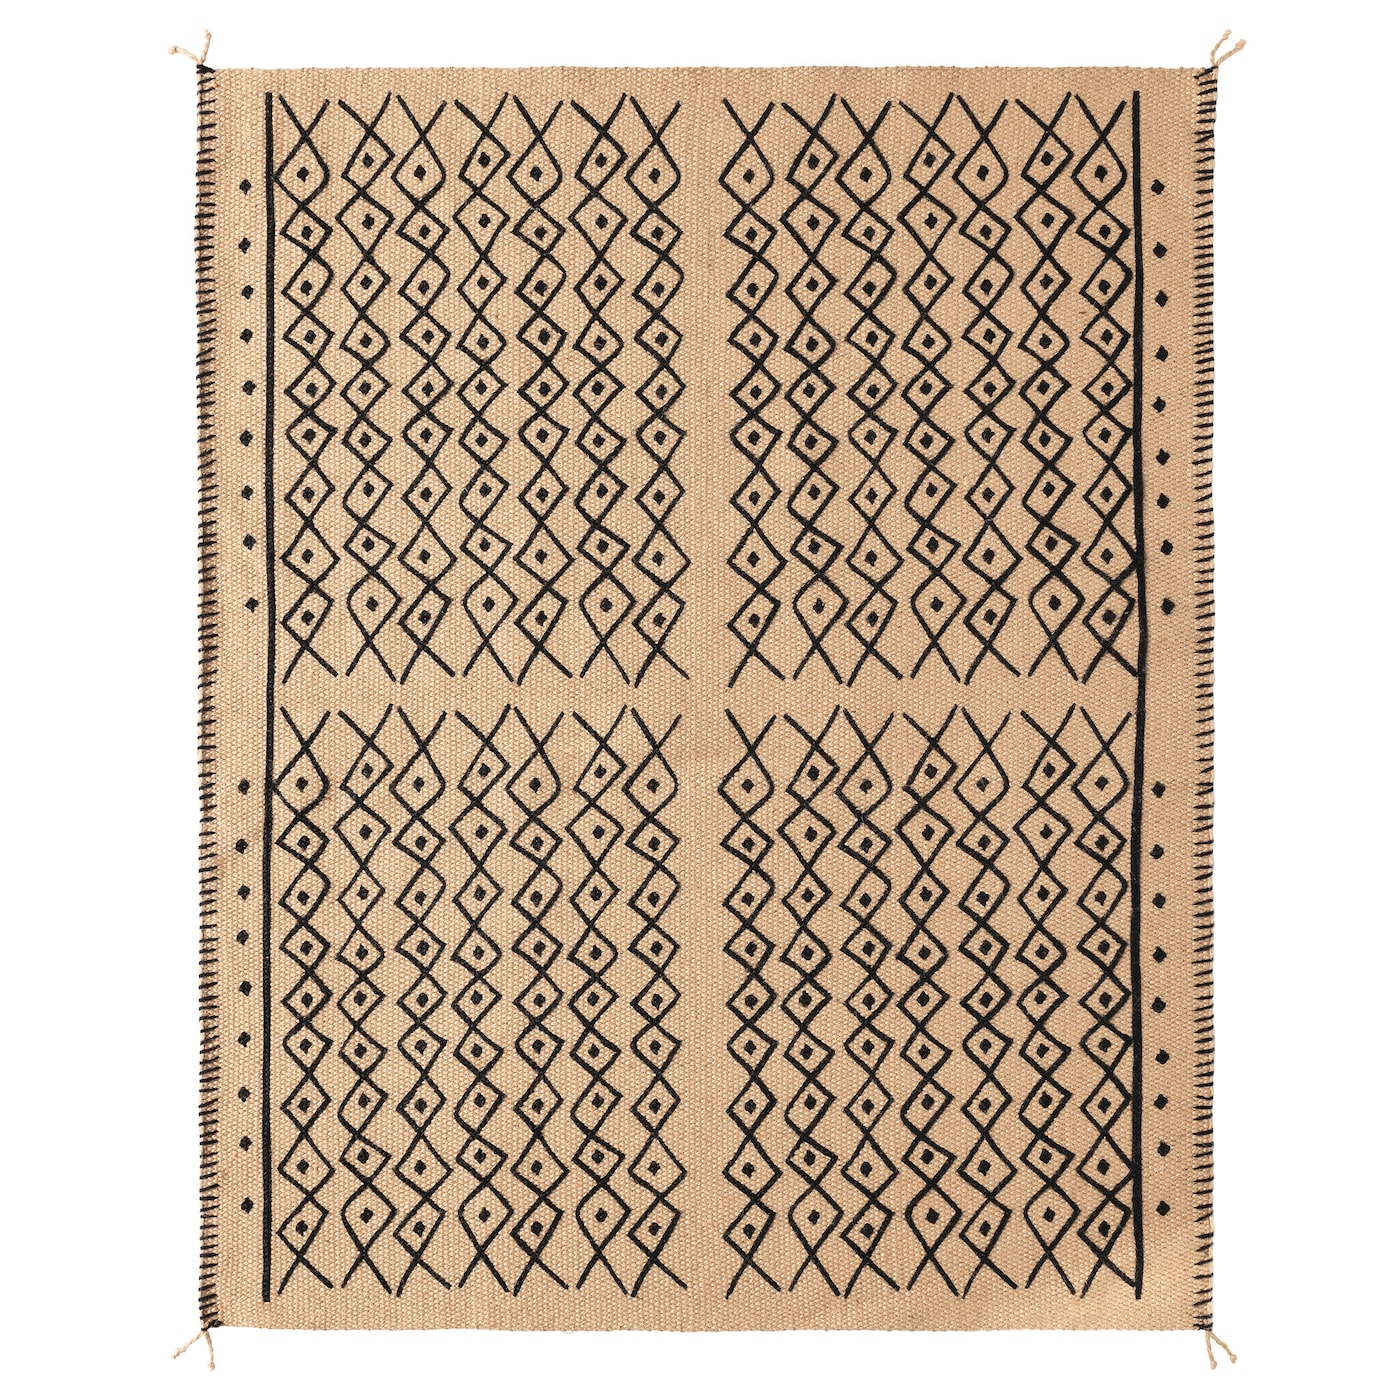 IKEA JASSA rug, flatwoven Jute is a durable and recyclable material with natural colour variations.